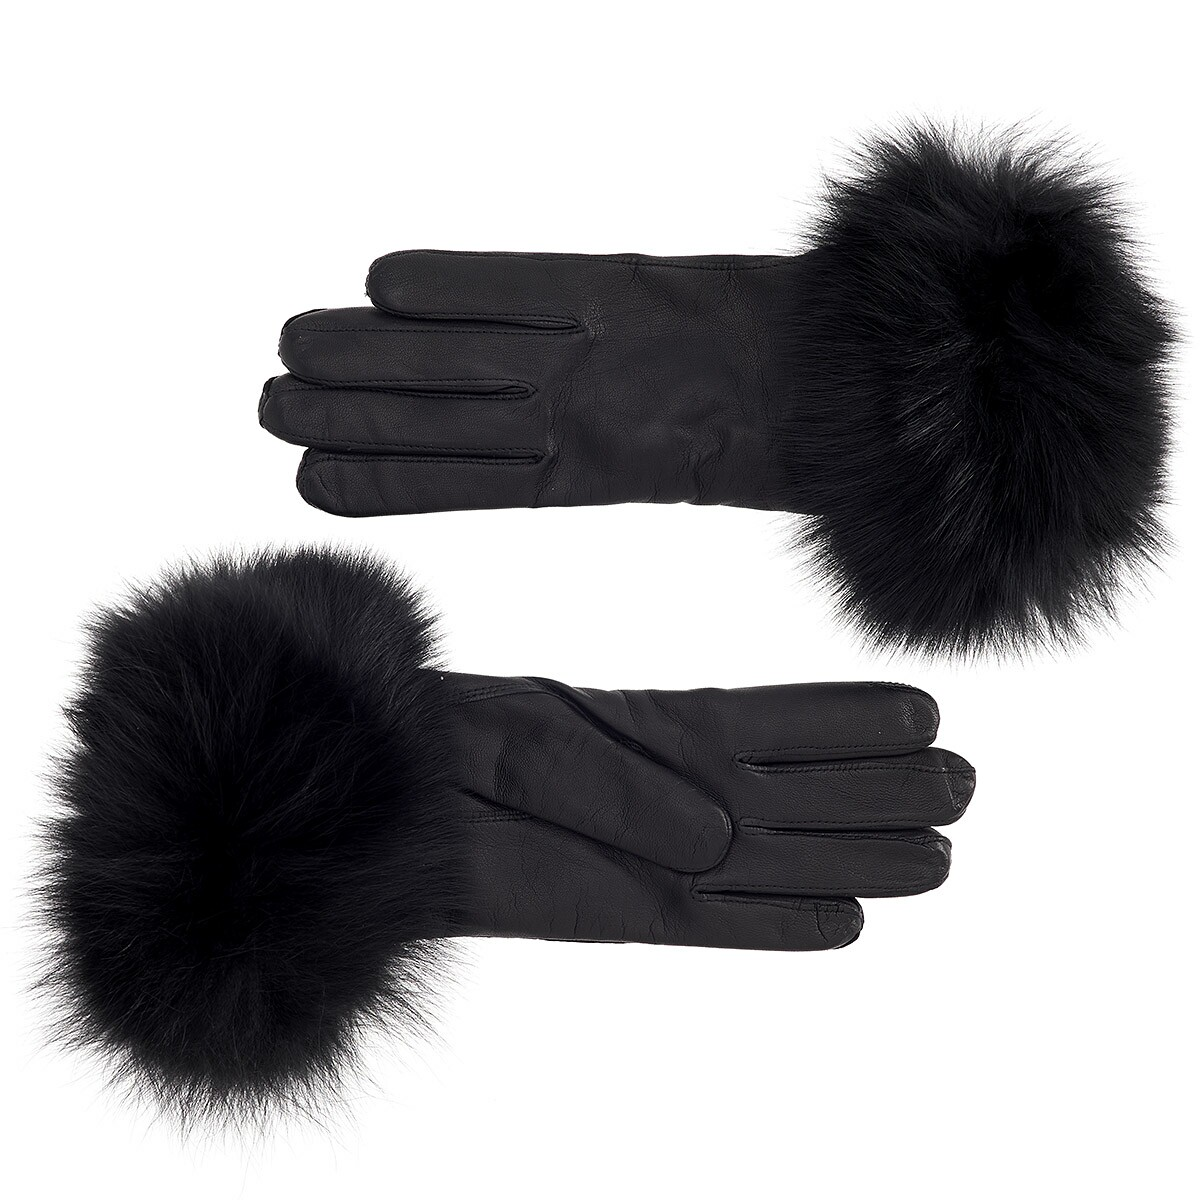 Ladies leather gloves large - Women S Cashmere Lined Leather Gloves With Black Fox Cuff